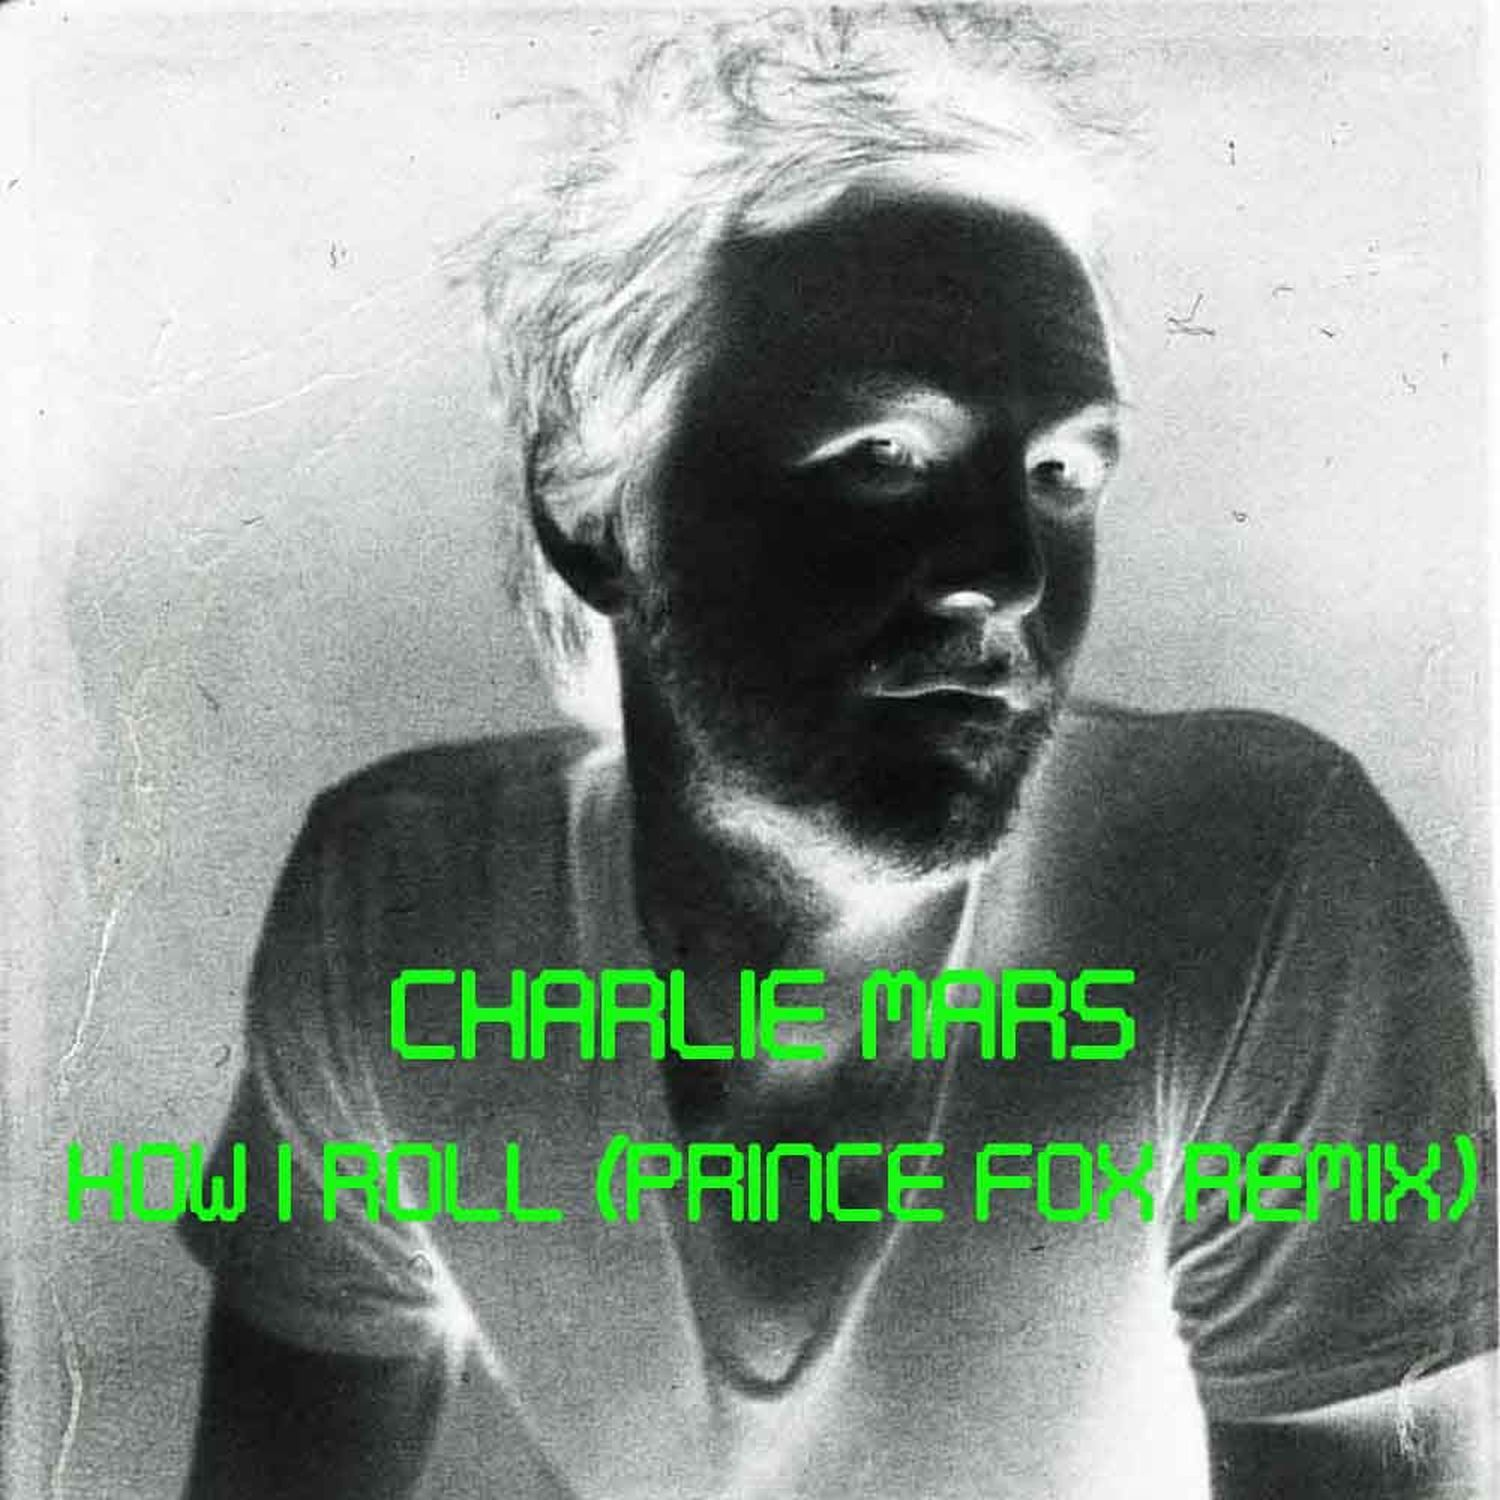 Charlie-Mars-How-I-Roll-Prince-Fox-Remix-Artwork-FINAL